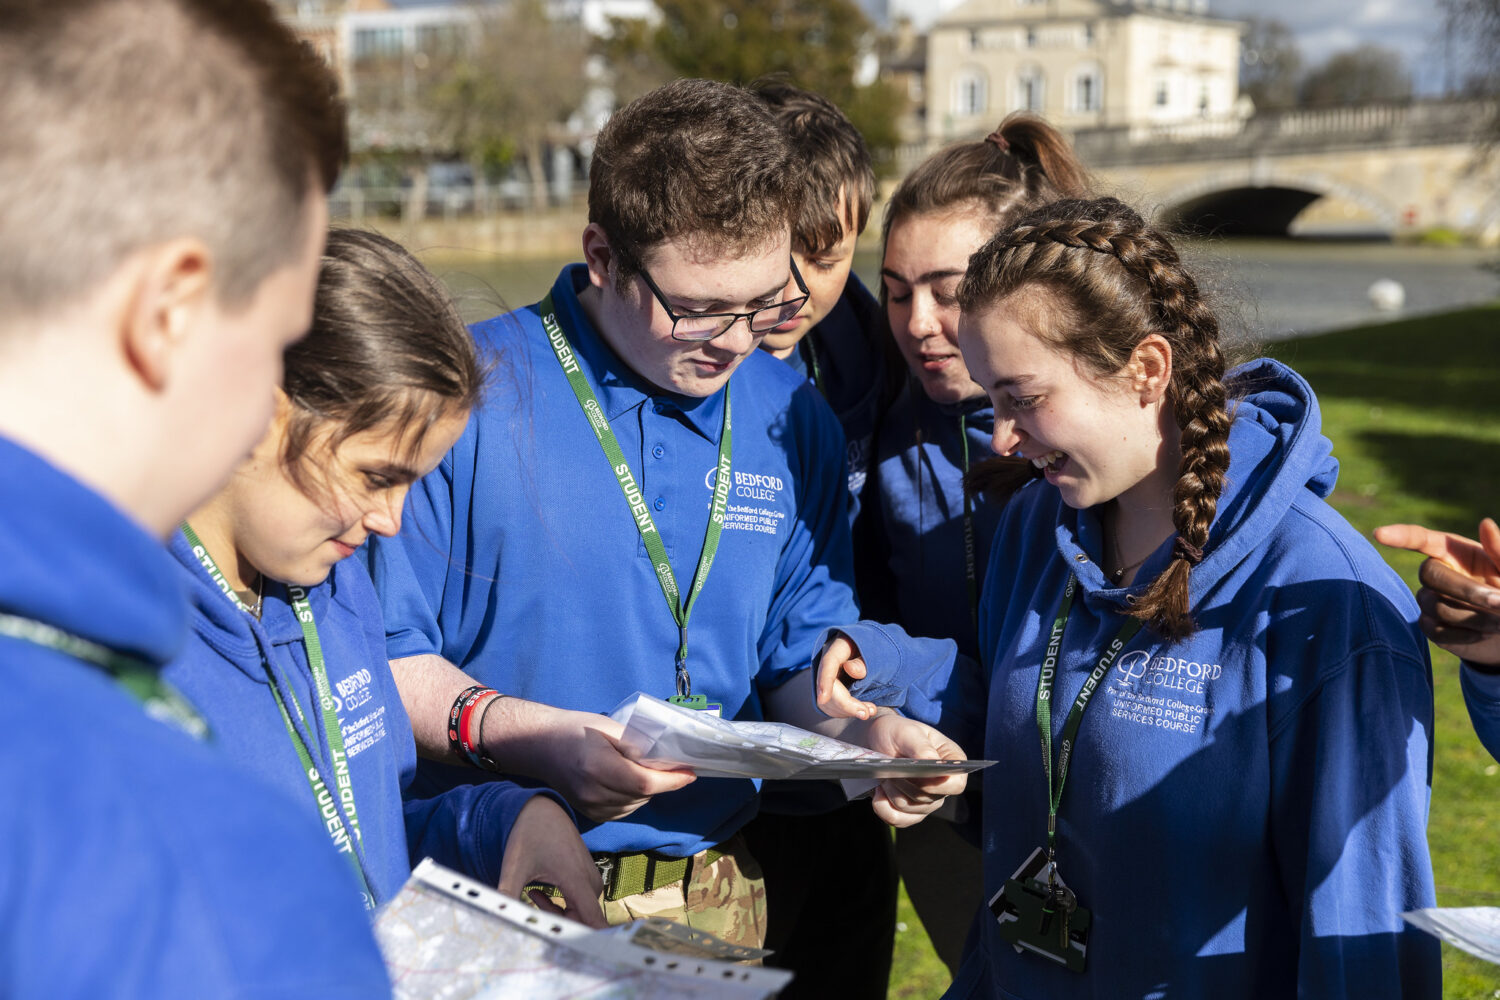 The Bedford College Group Public Services Students